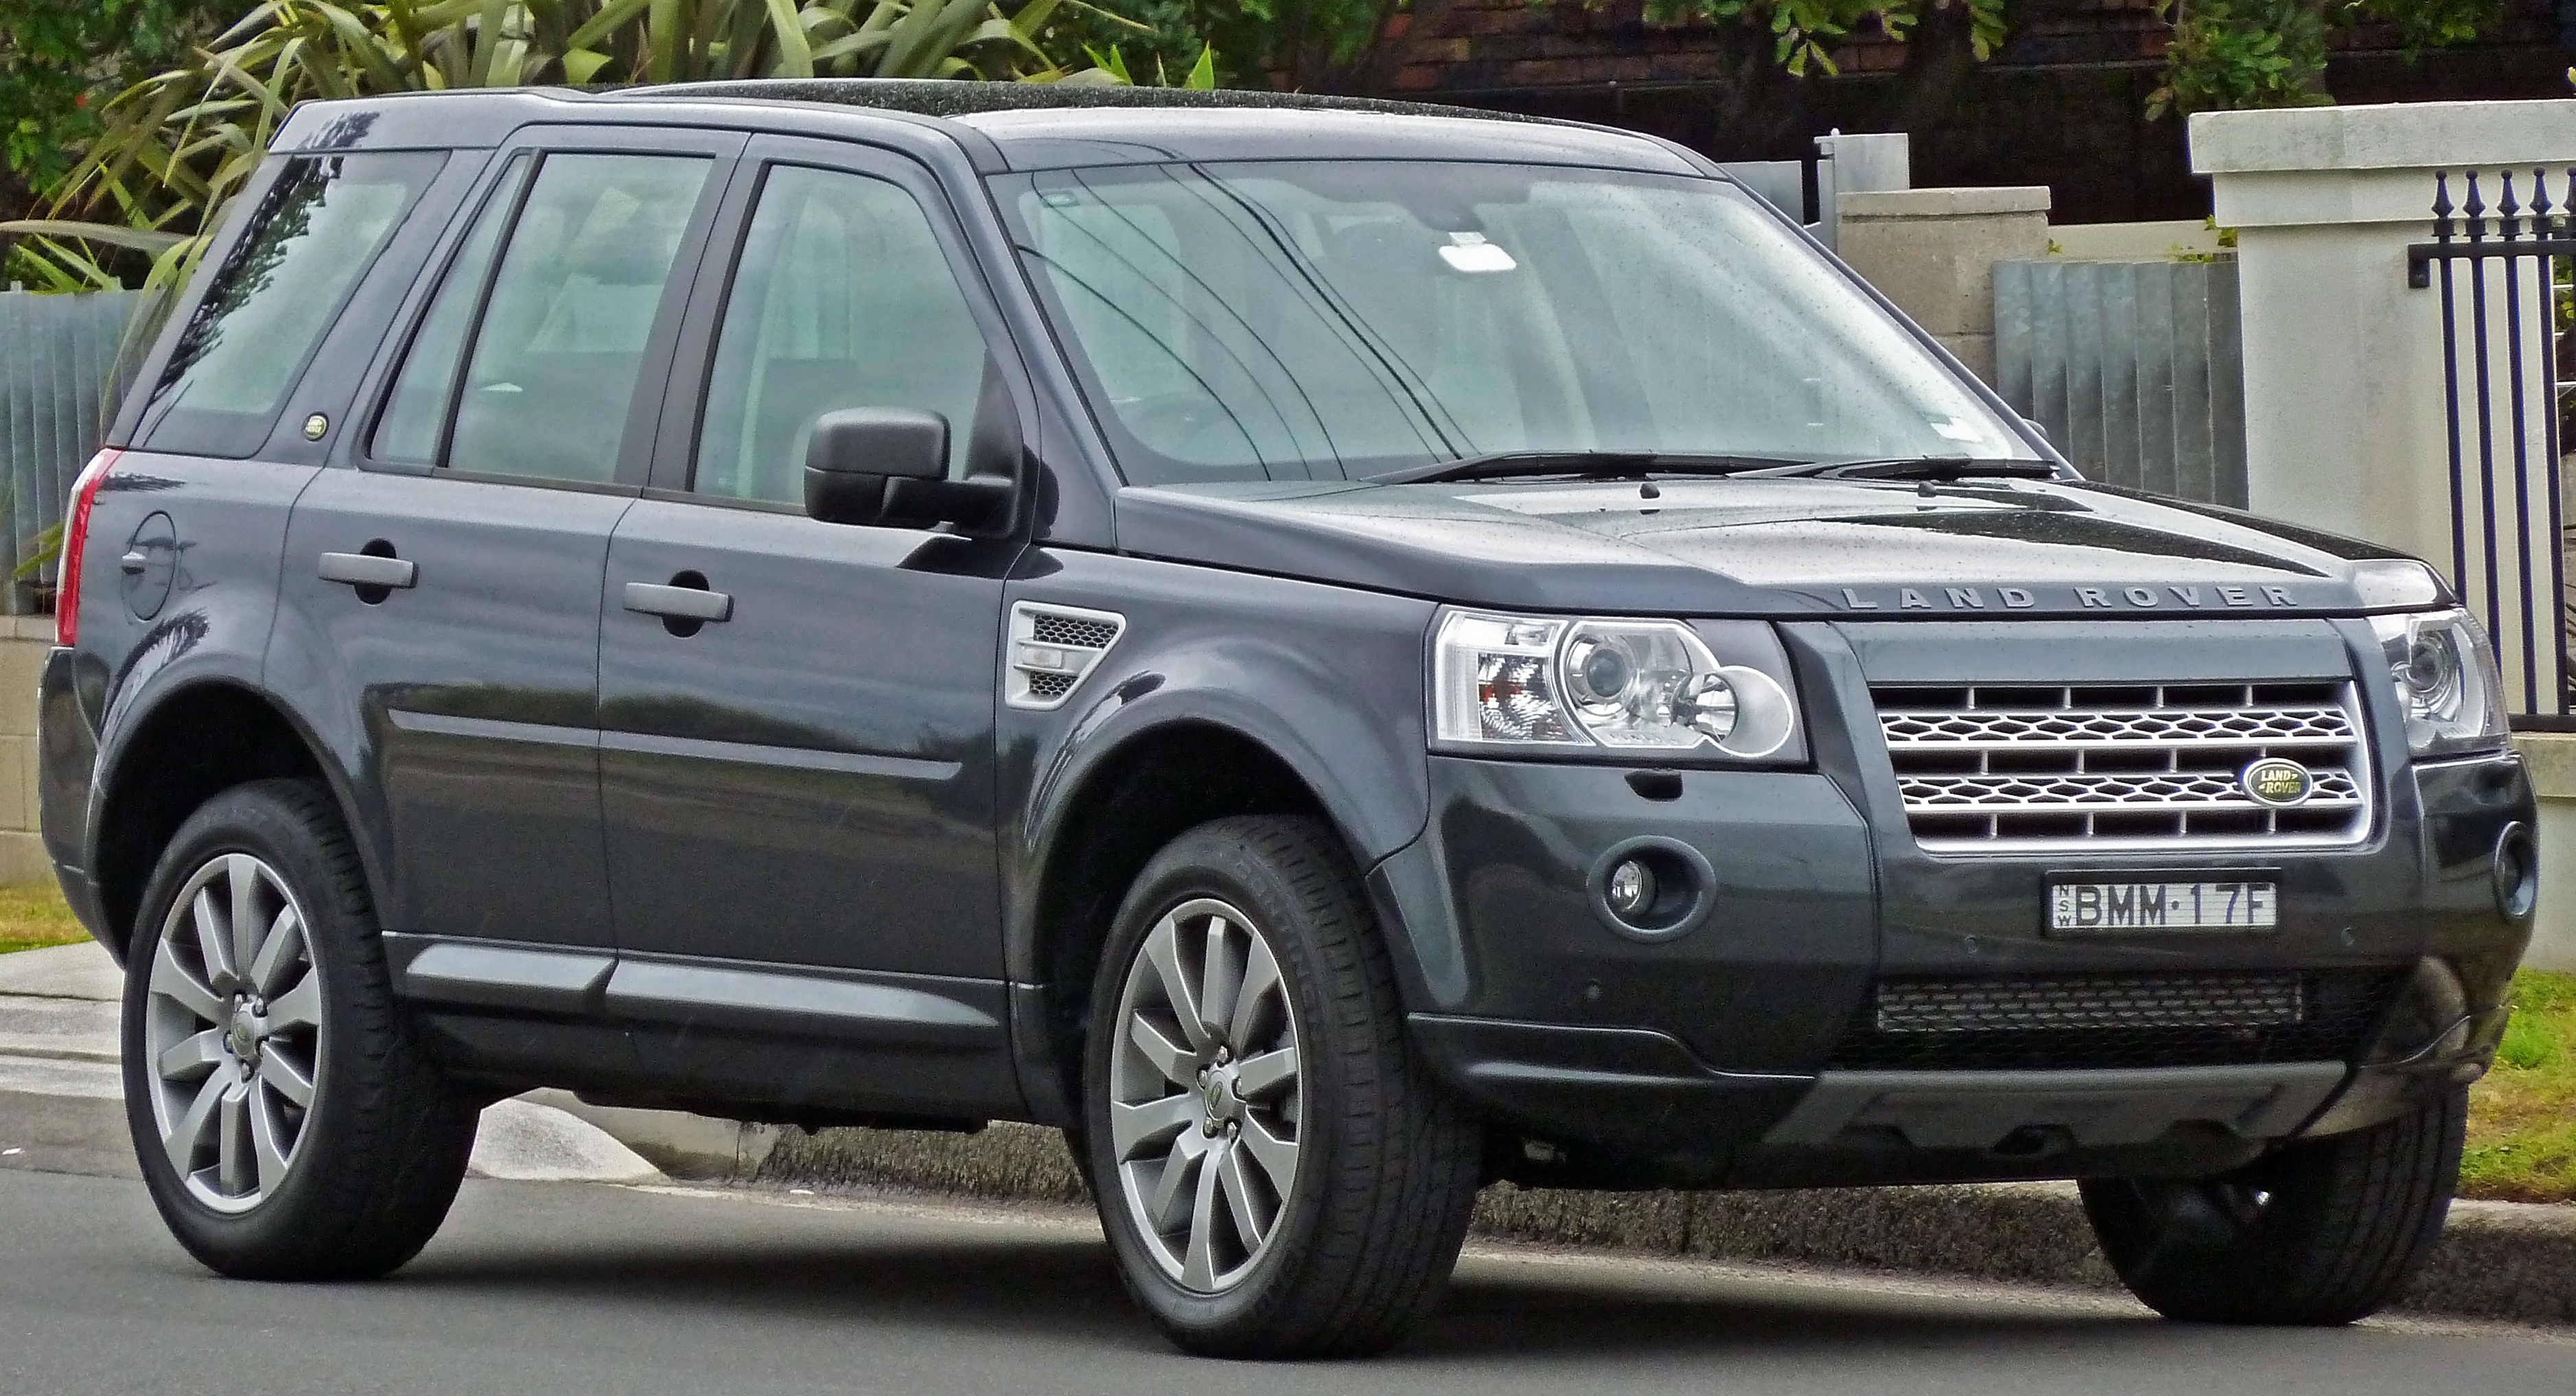 file 2007 2010 land rover freelander 2 lf hse td4 wagon. Black Bedroom Furniture Sets. Home Design Ideas